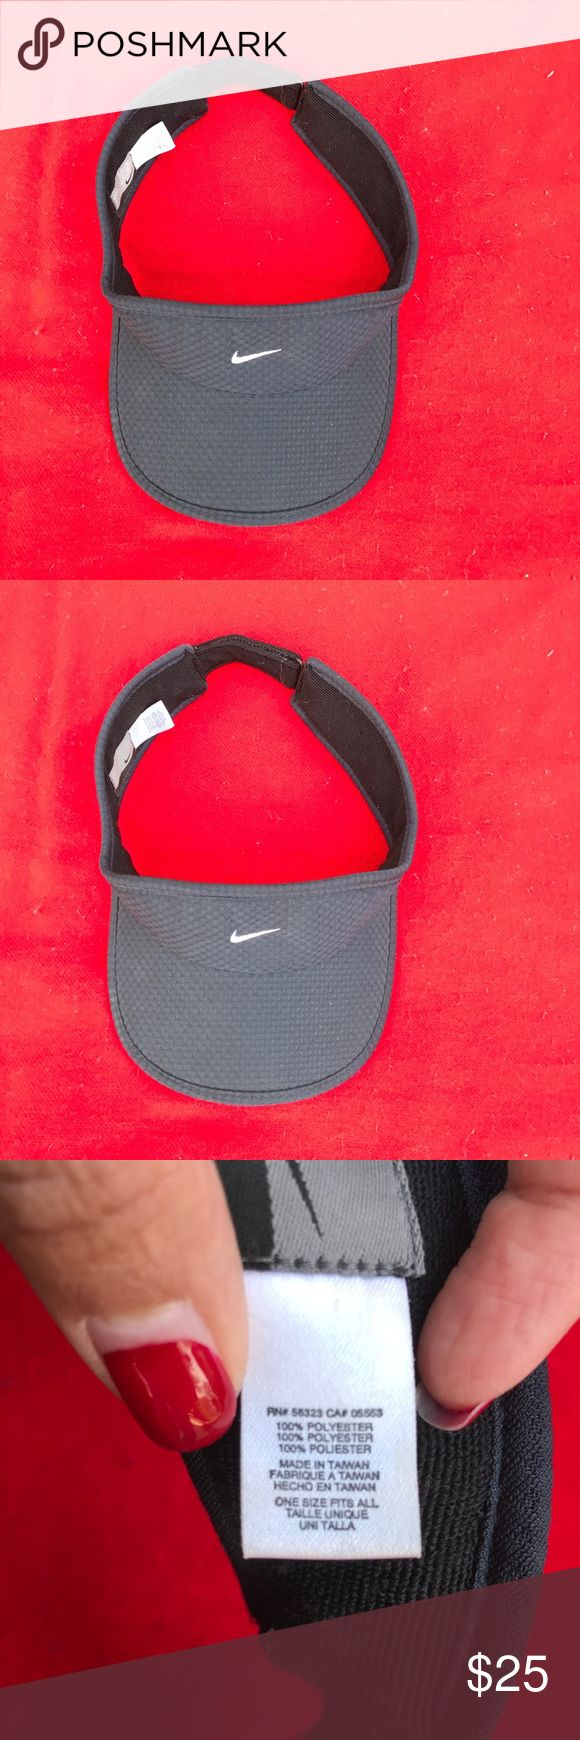 Nike visor adjustable Nike visor. One-size-fits-all with an adjustable Velcro strap. Black color with a slight black pattern and the Nike symbol on the top of the visor. fully adjustable with Velcro in the back. No rips stains or tears. Has a sweatband. Nike Accessories Hats